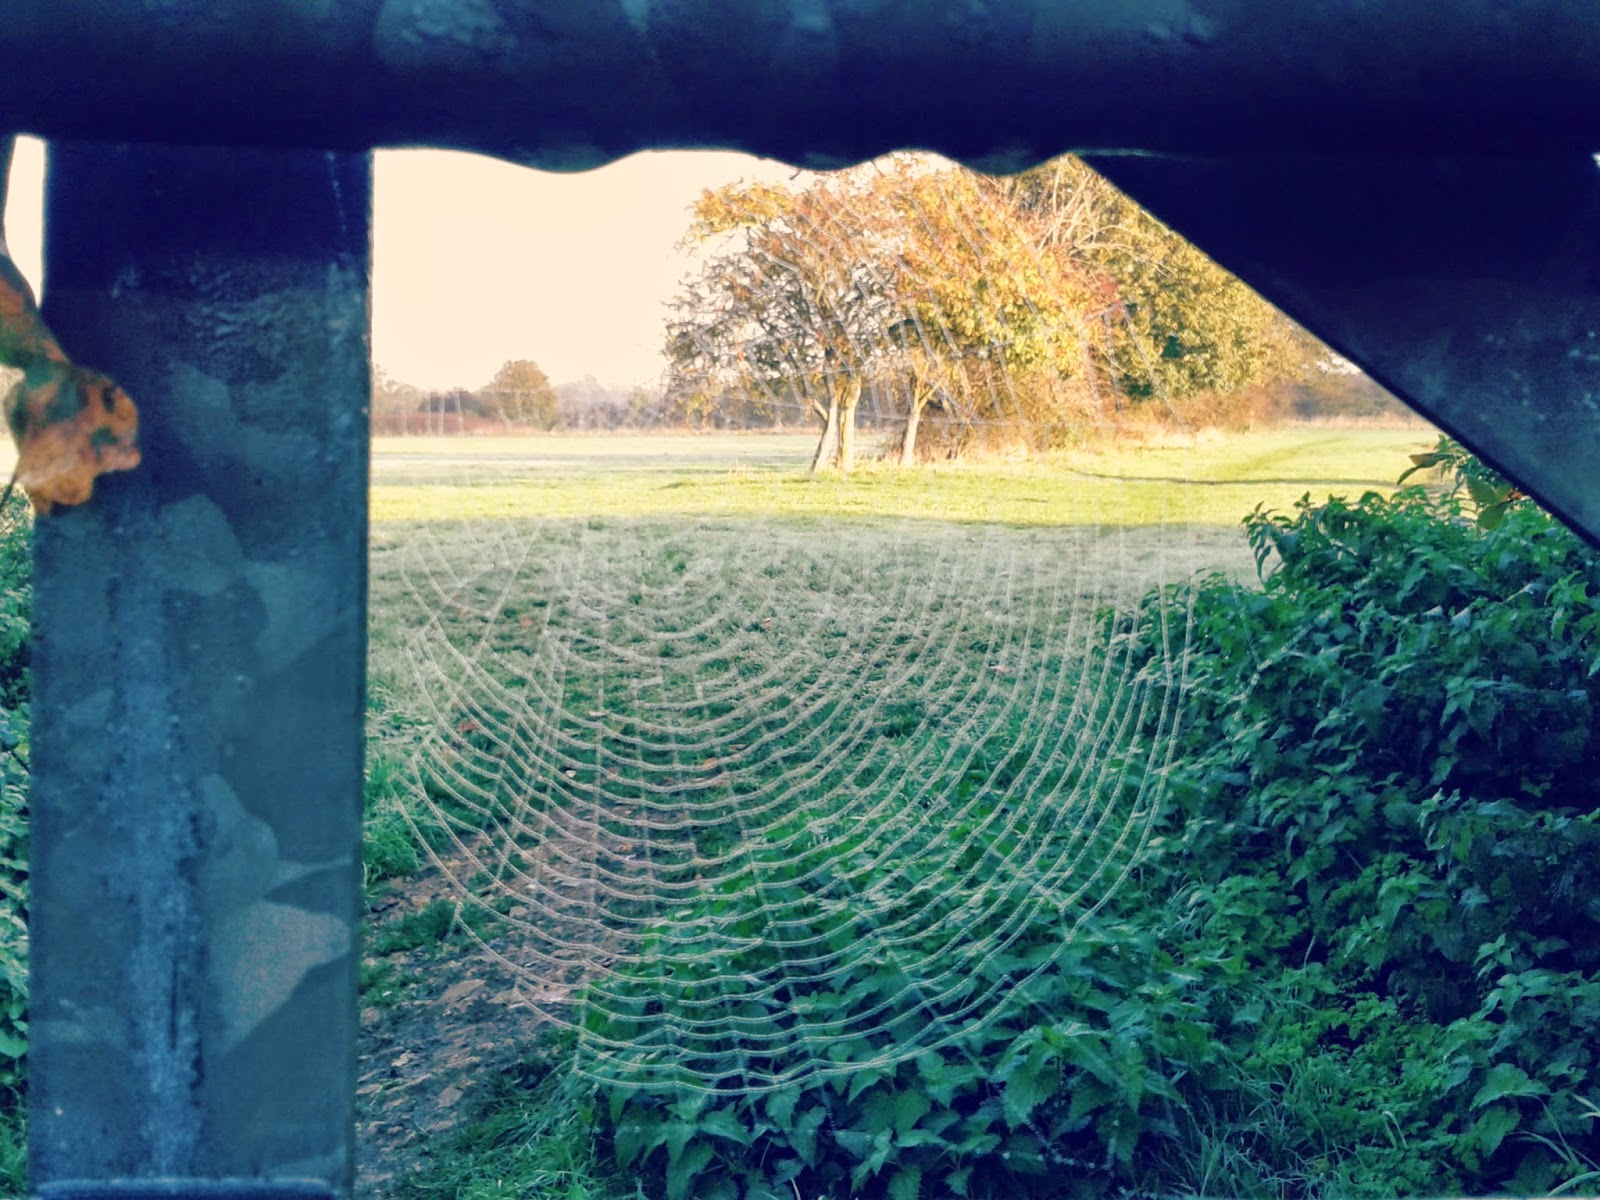 Project 365 day 308 - Autumn cobwebs // 76sunflowers